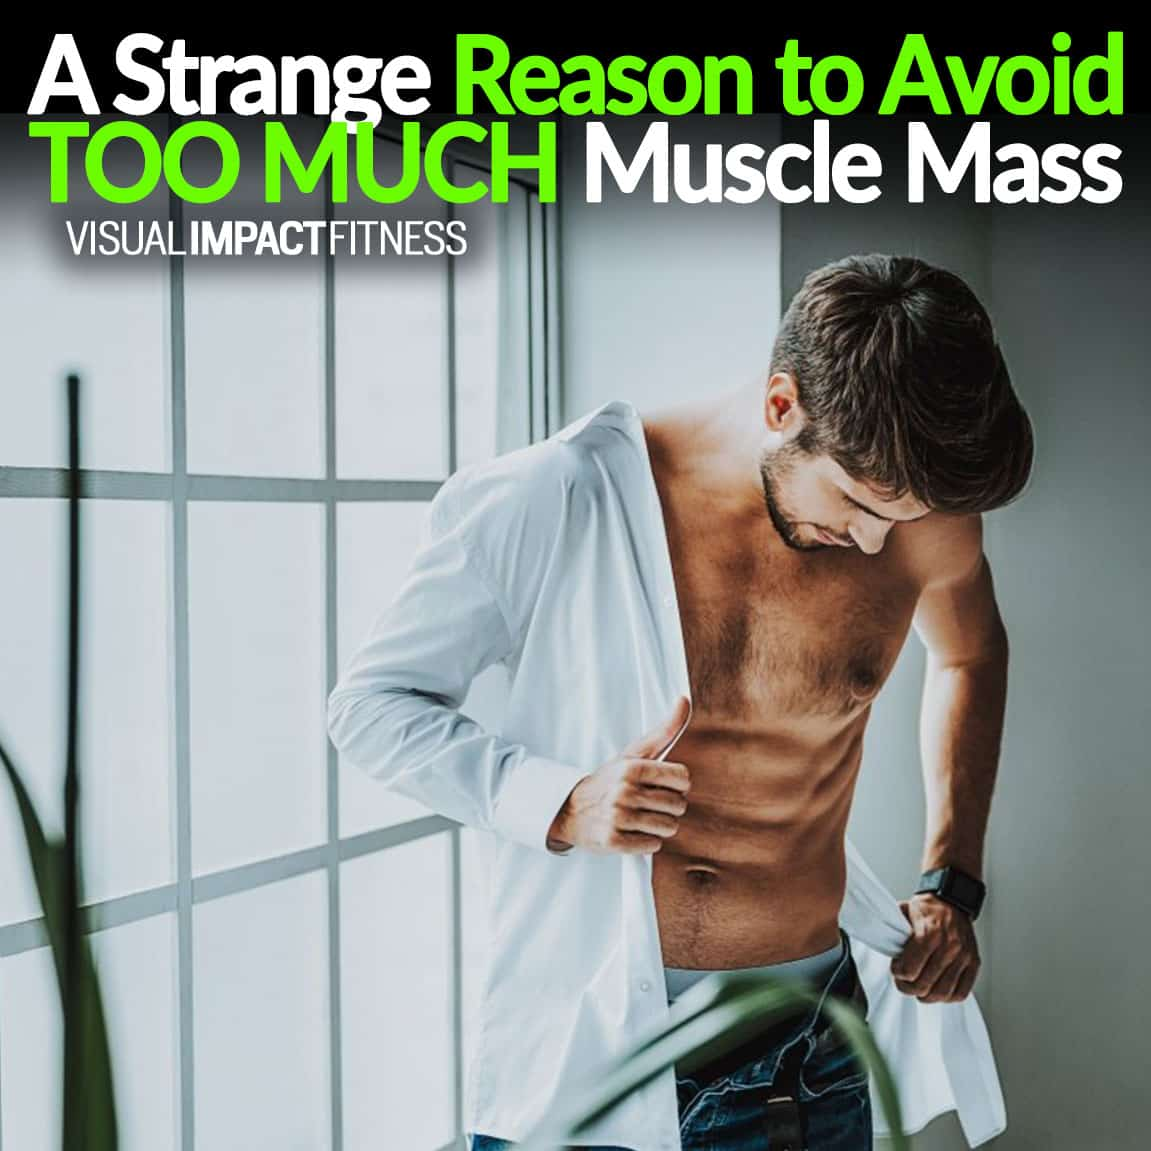 A Strange Reason to Avoid TOO MUCH Muscle Mass